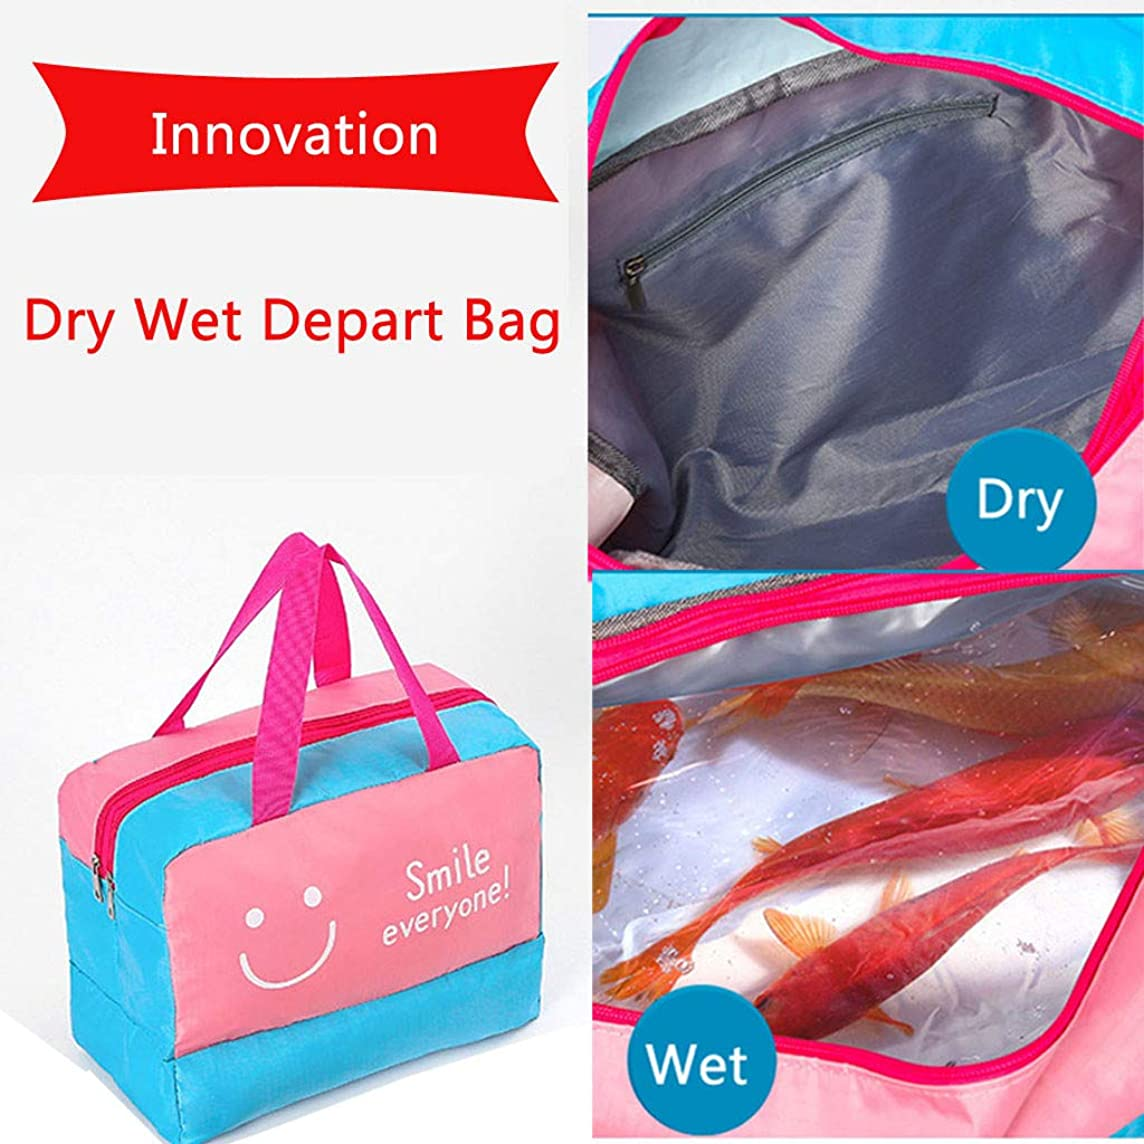 YunZyun Waterproof Storage Bag Dry Wet Depart Bag Shoe Compartment Swim Suit Bag for Swimming and Travel Toiletries Storage (Multicolor)